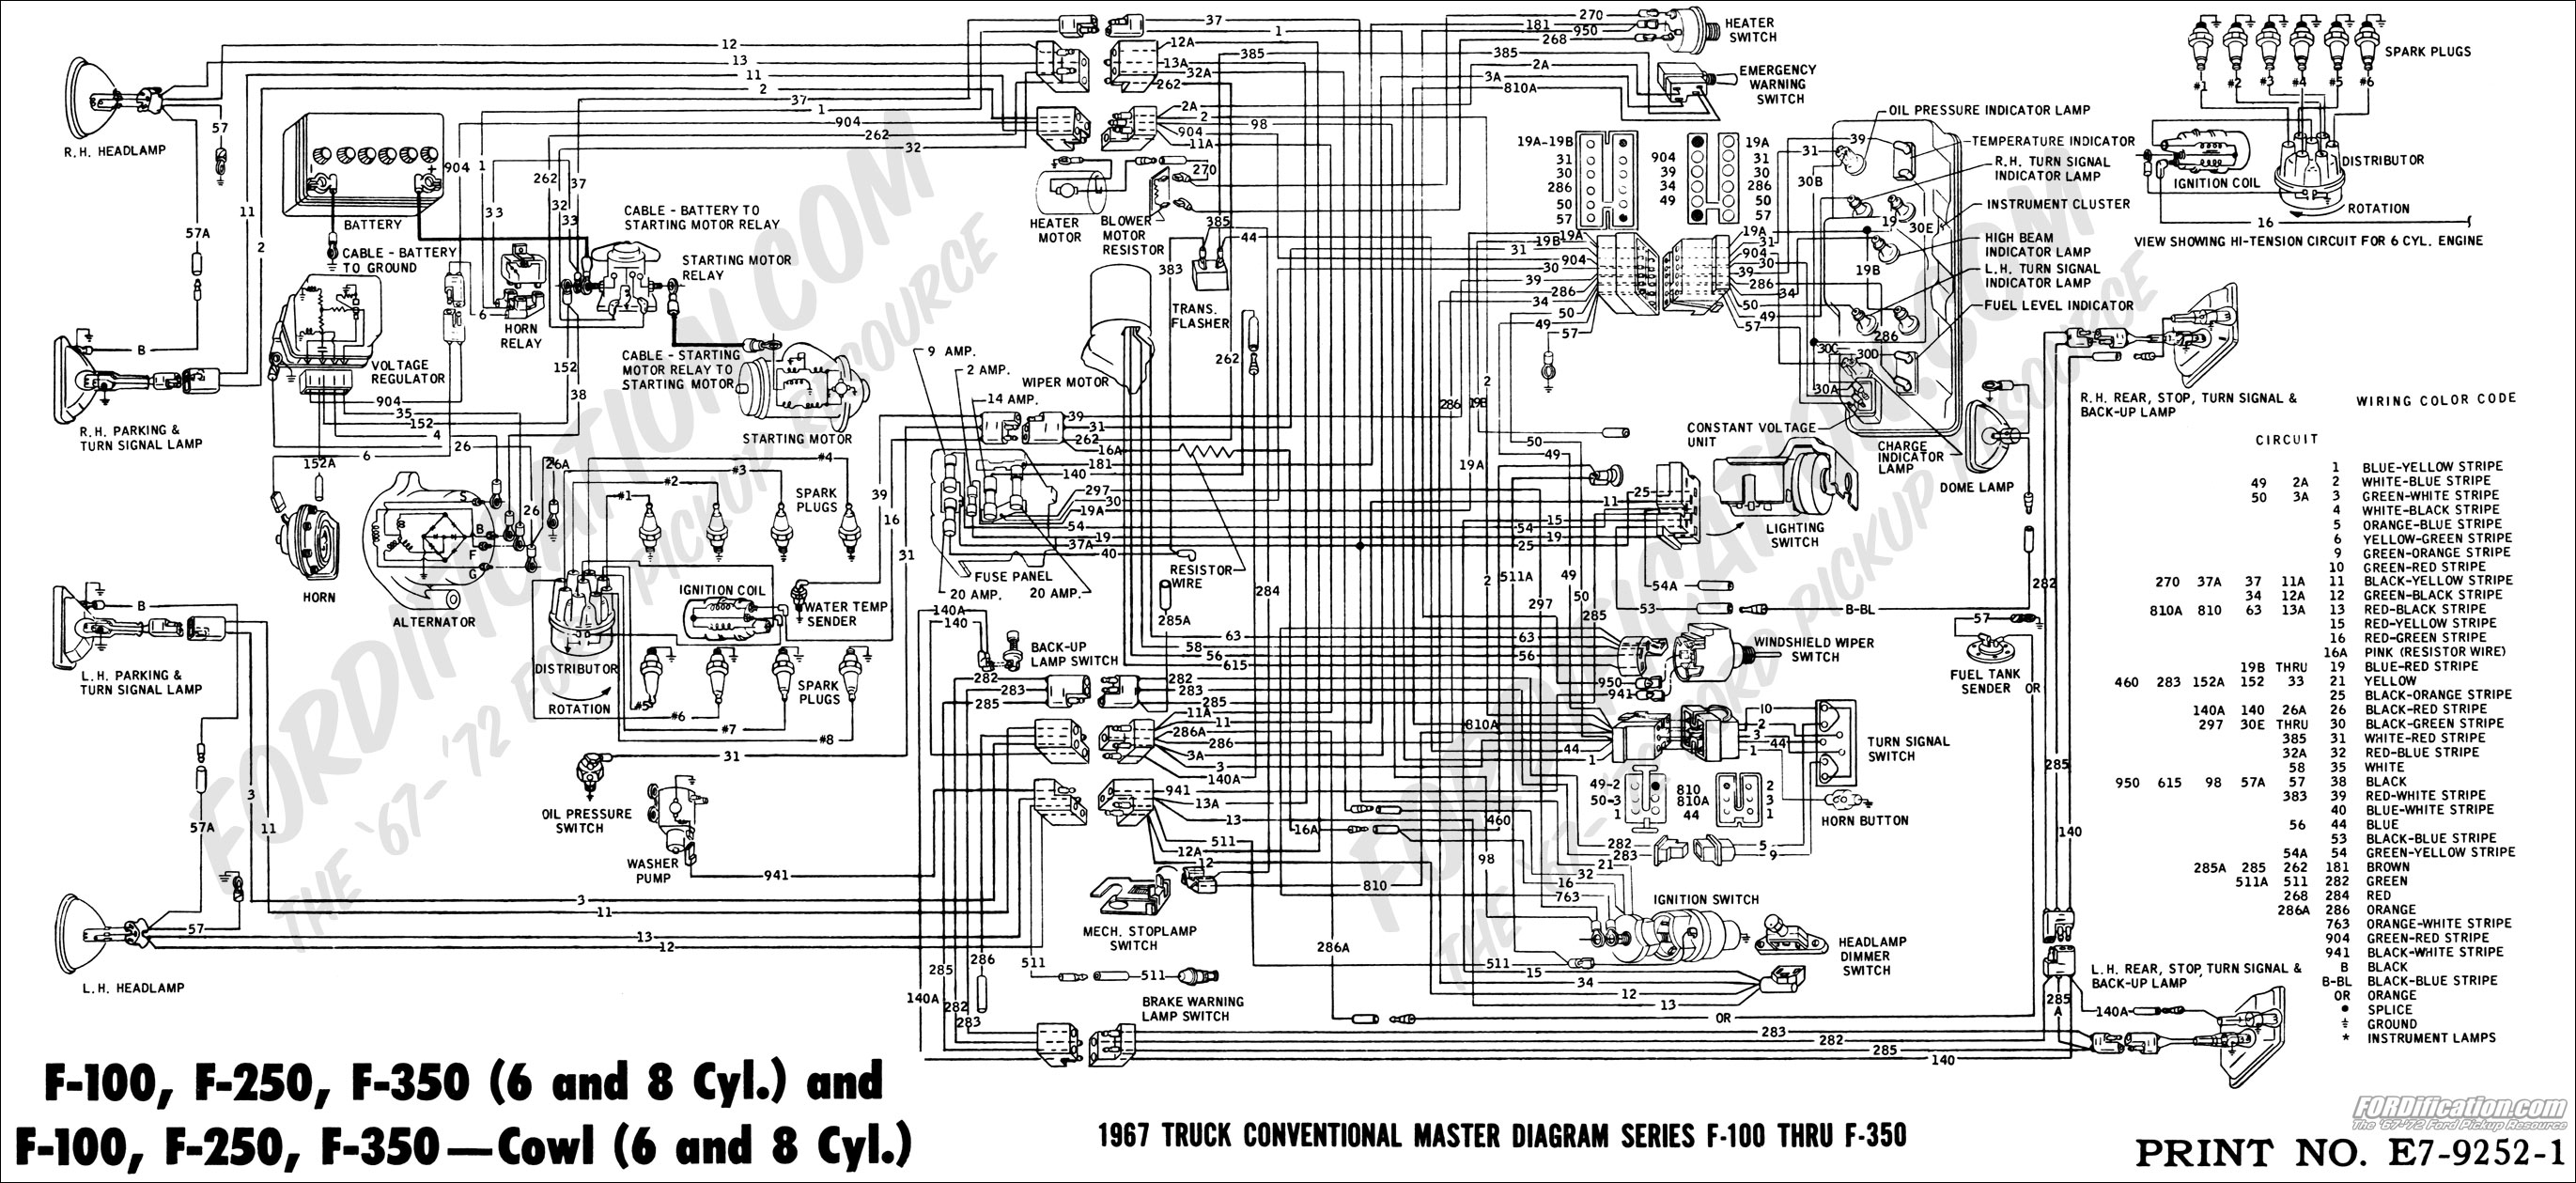 67masterdiagram ford truck technical drawings and schematics section h wiring Ford Tail Light Wiring Diagram at nearapp.co